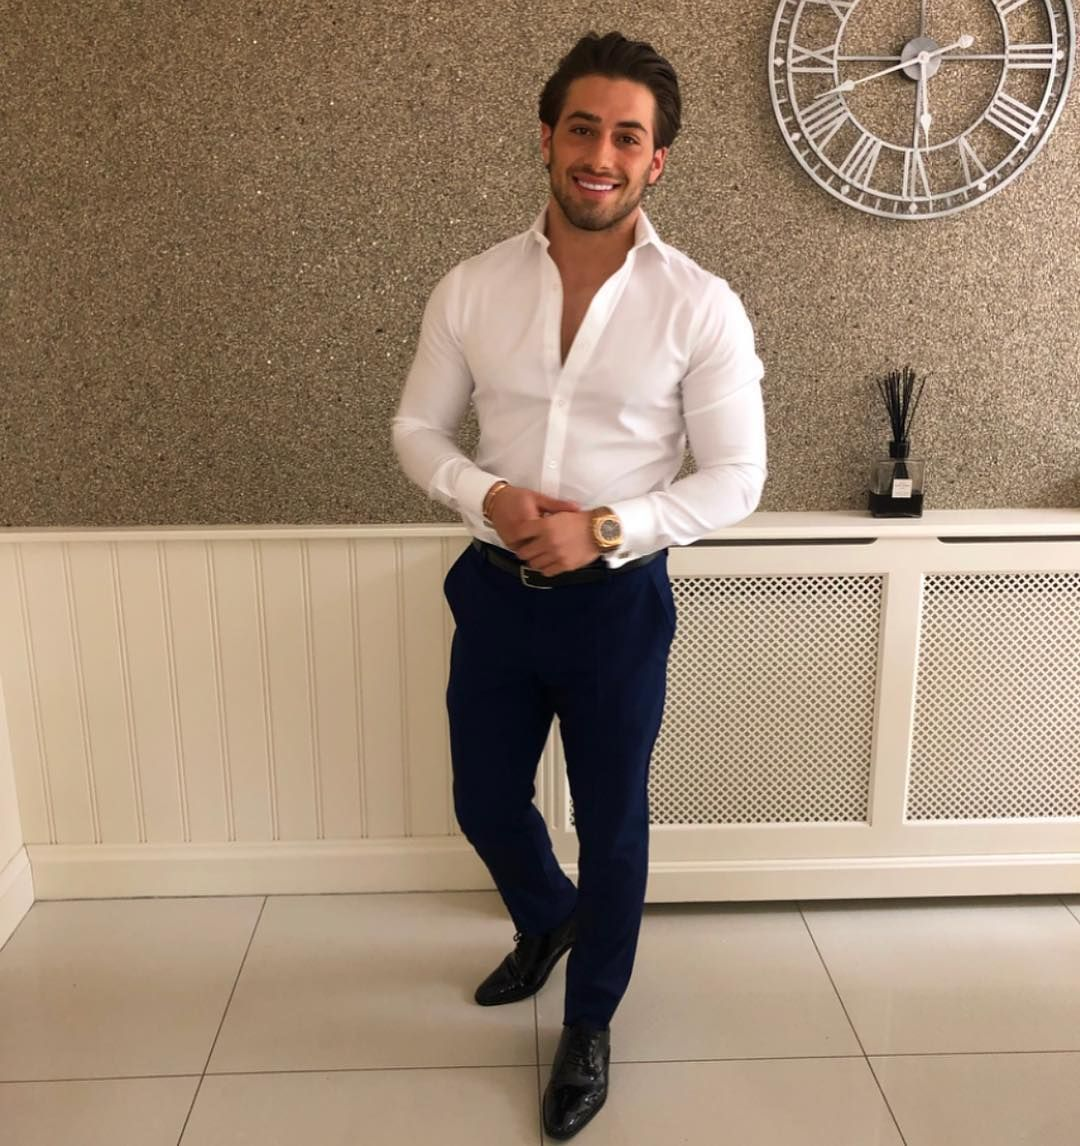 Image may contain: Love Island cast GCSE results, GCSE, results day, 2019, exams, Kem Cetinay, Love Island, cast, Islanders, GCSE results day 2019, Man, Shirt, Pants, Person, Human, Clothing, Footwear, Shoe, Apparel